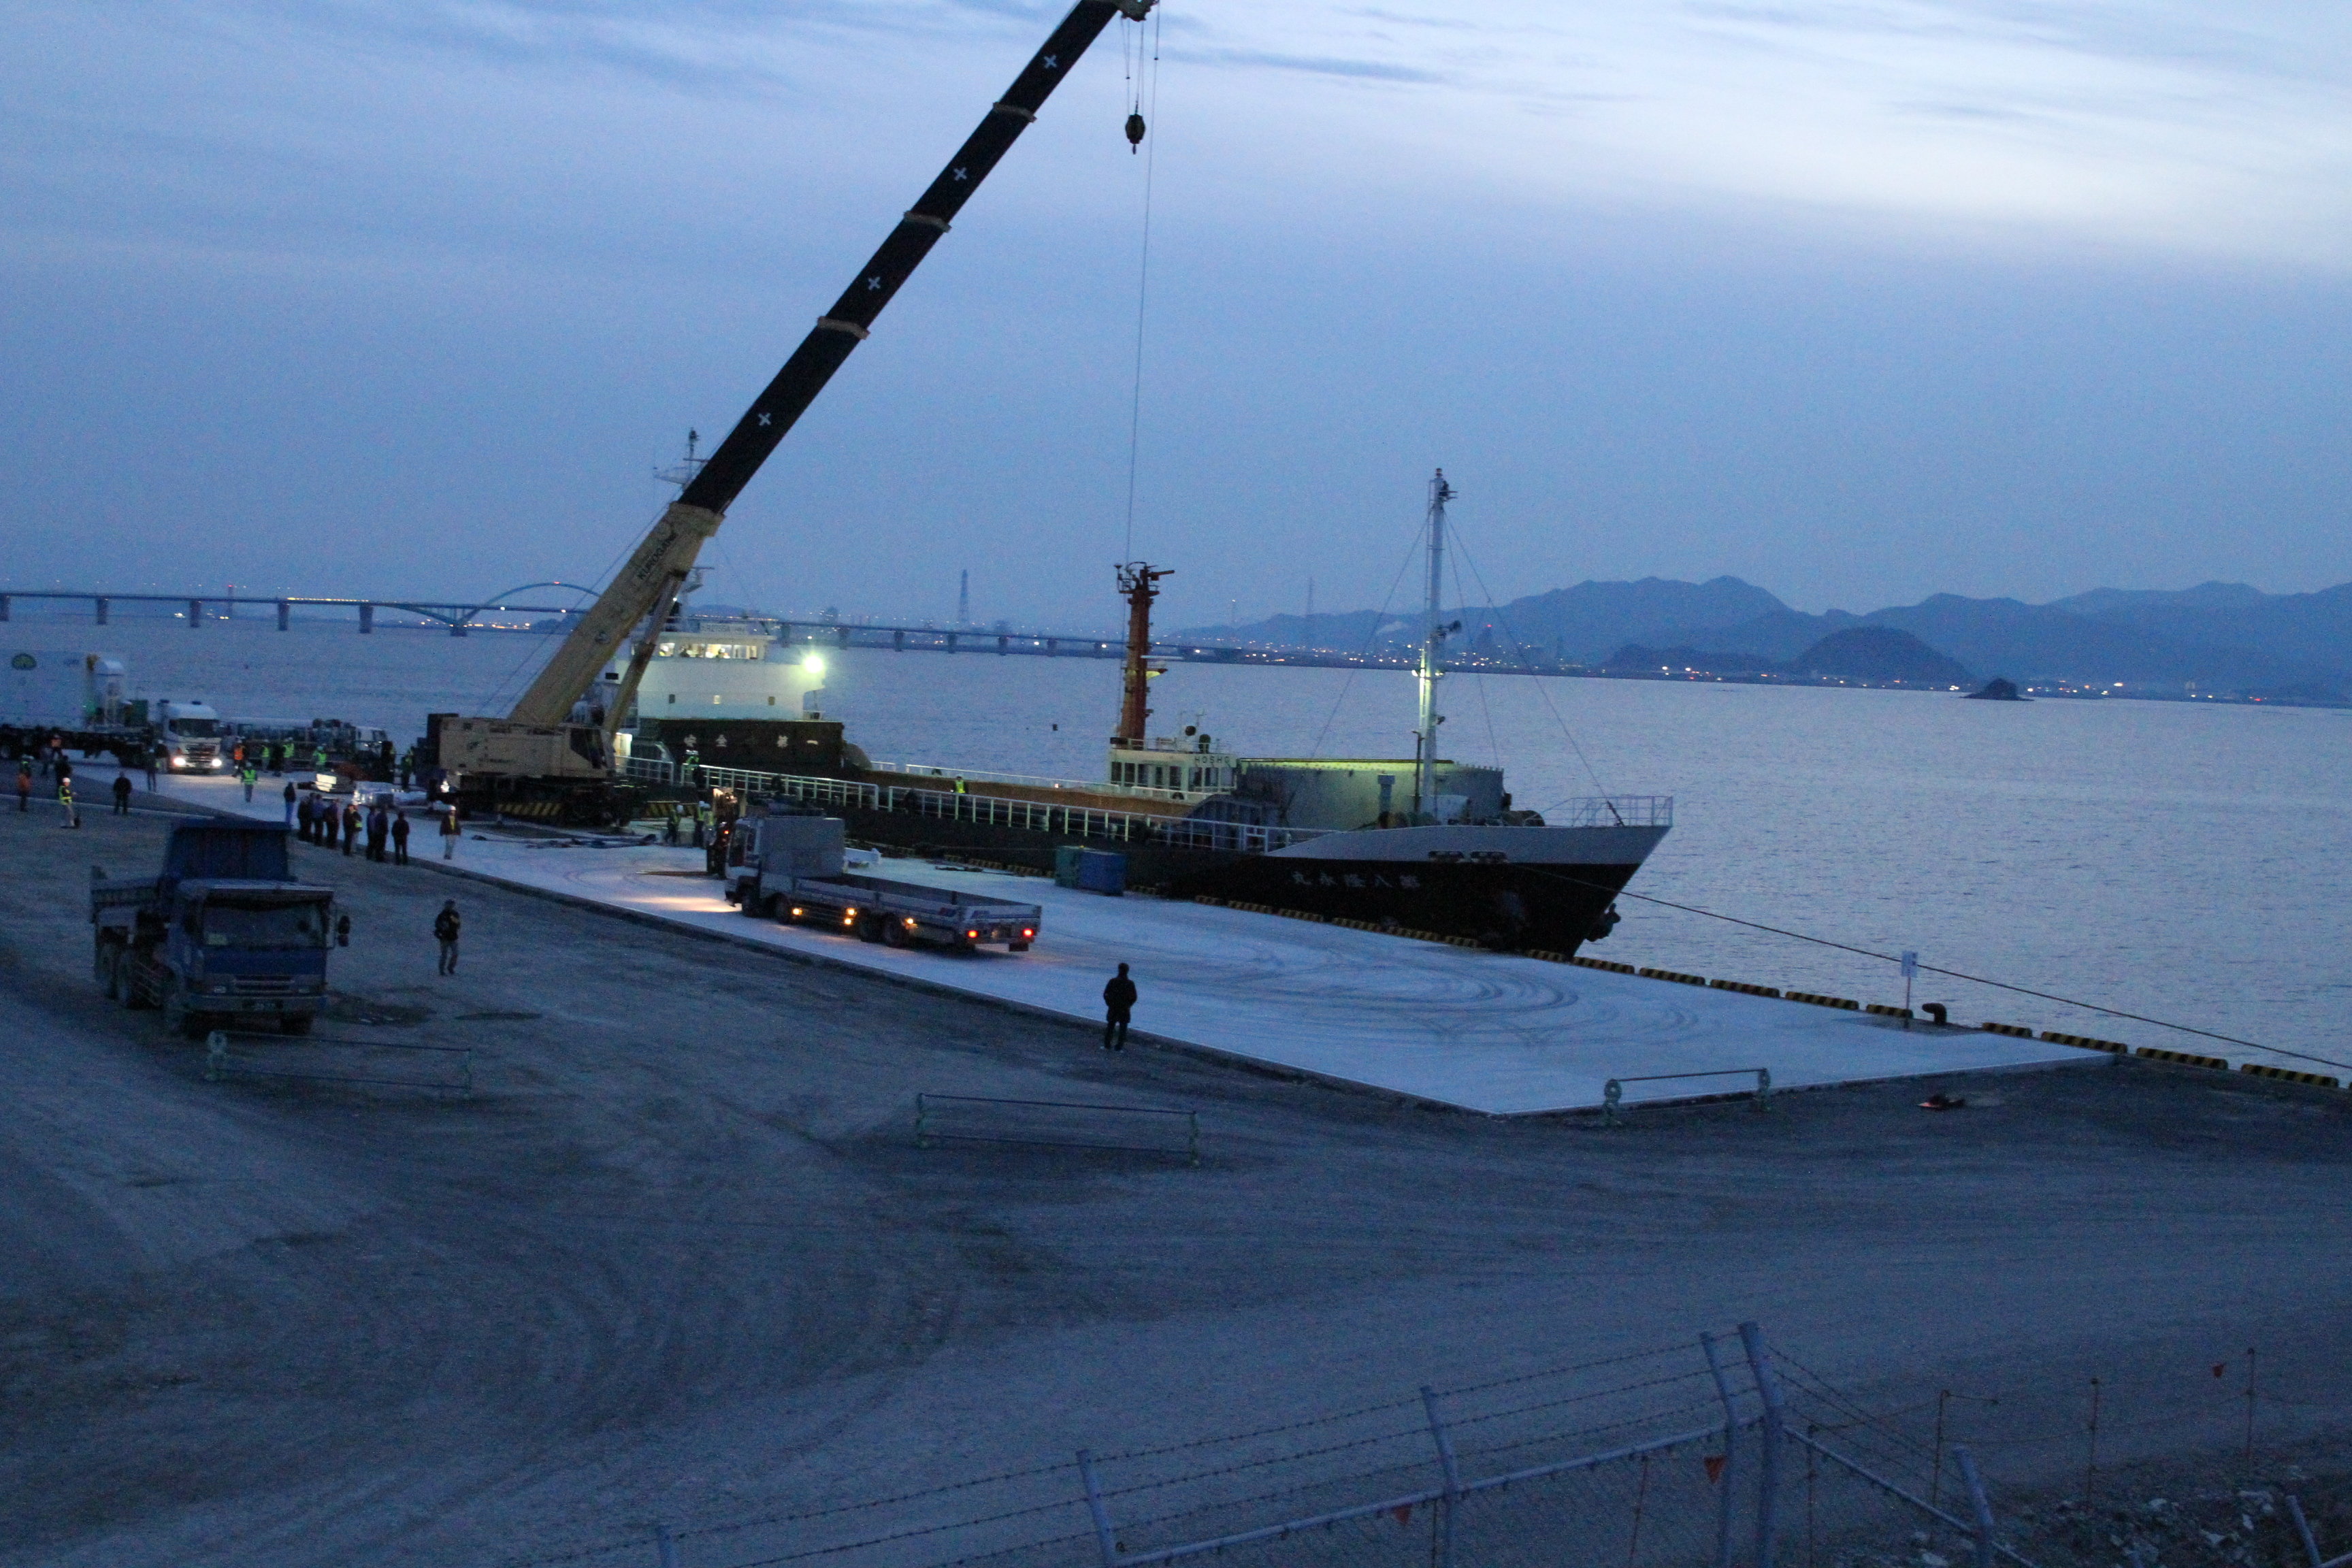 GPM Loaded onto Barge